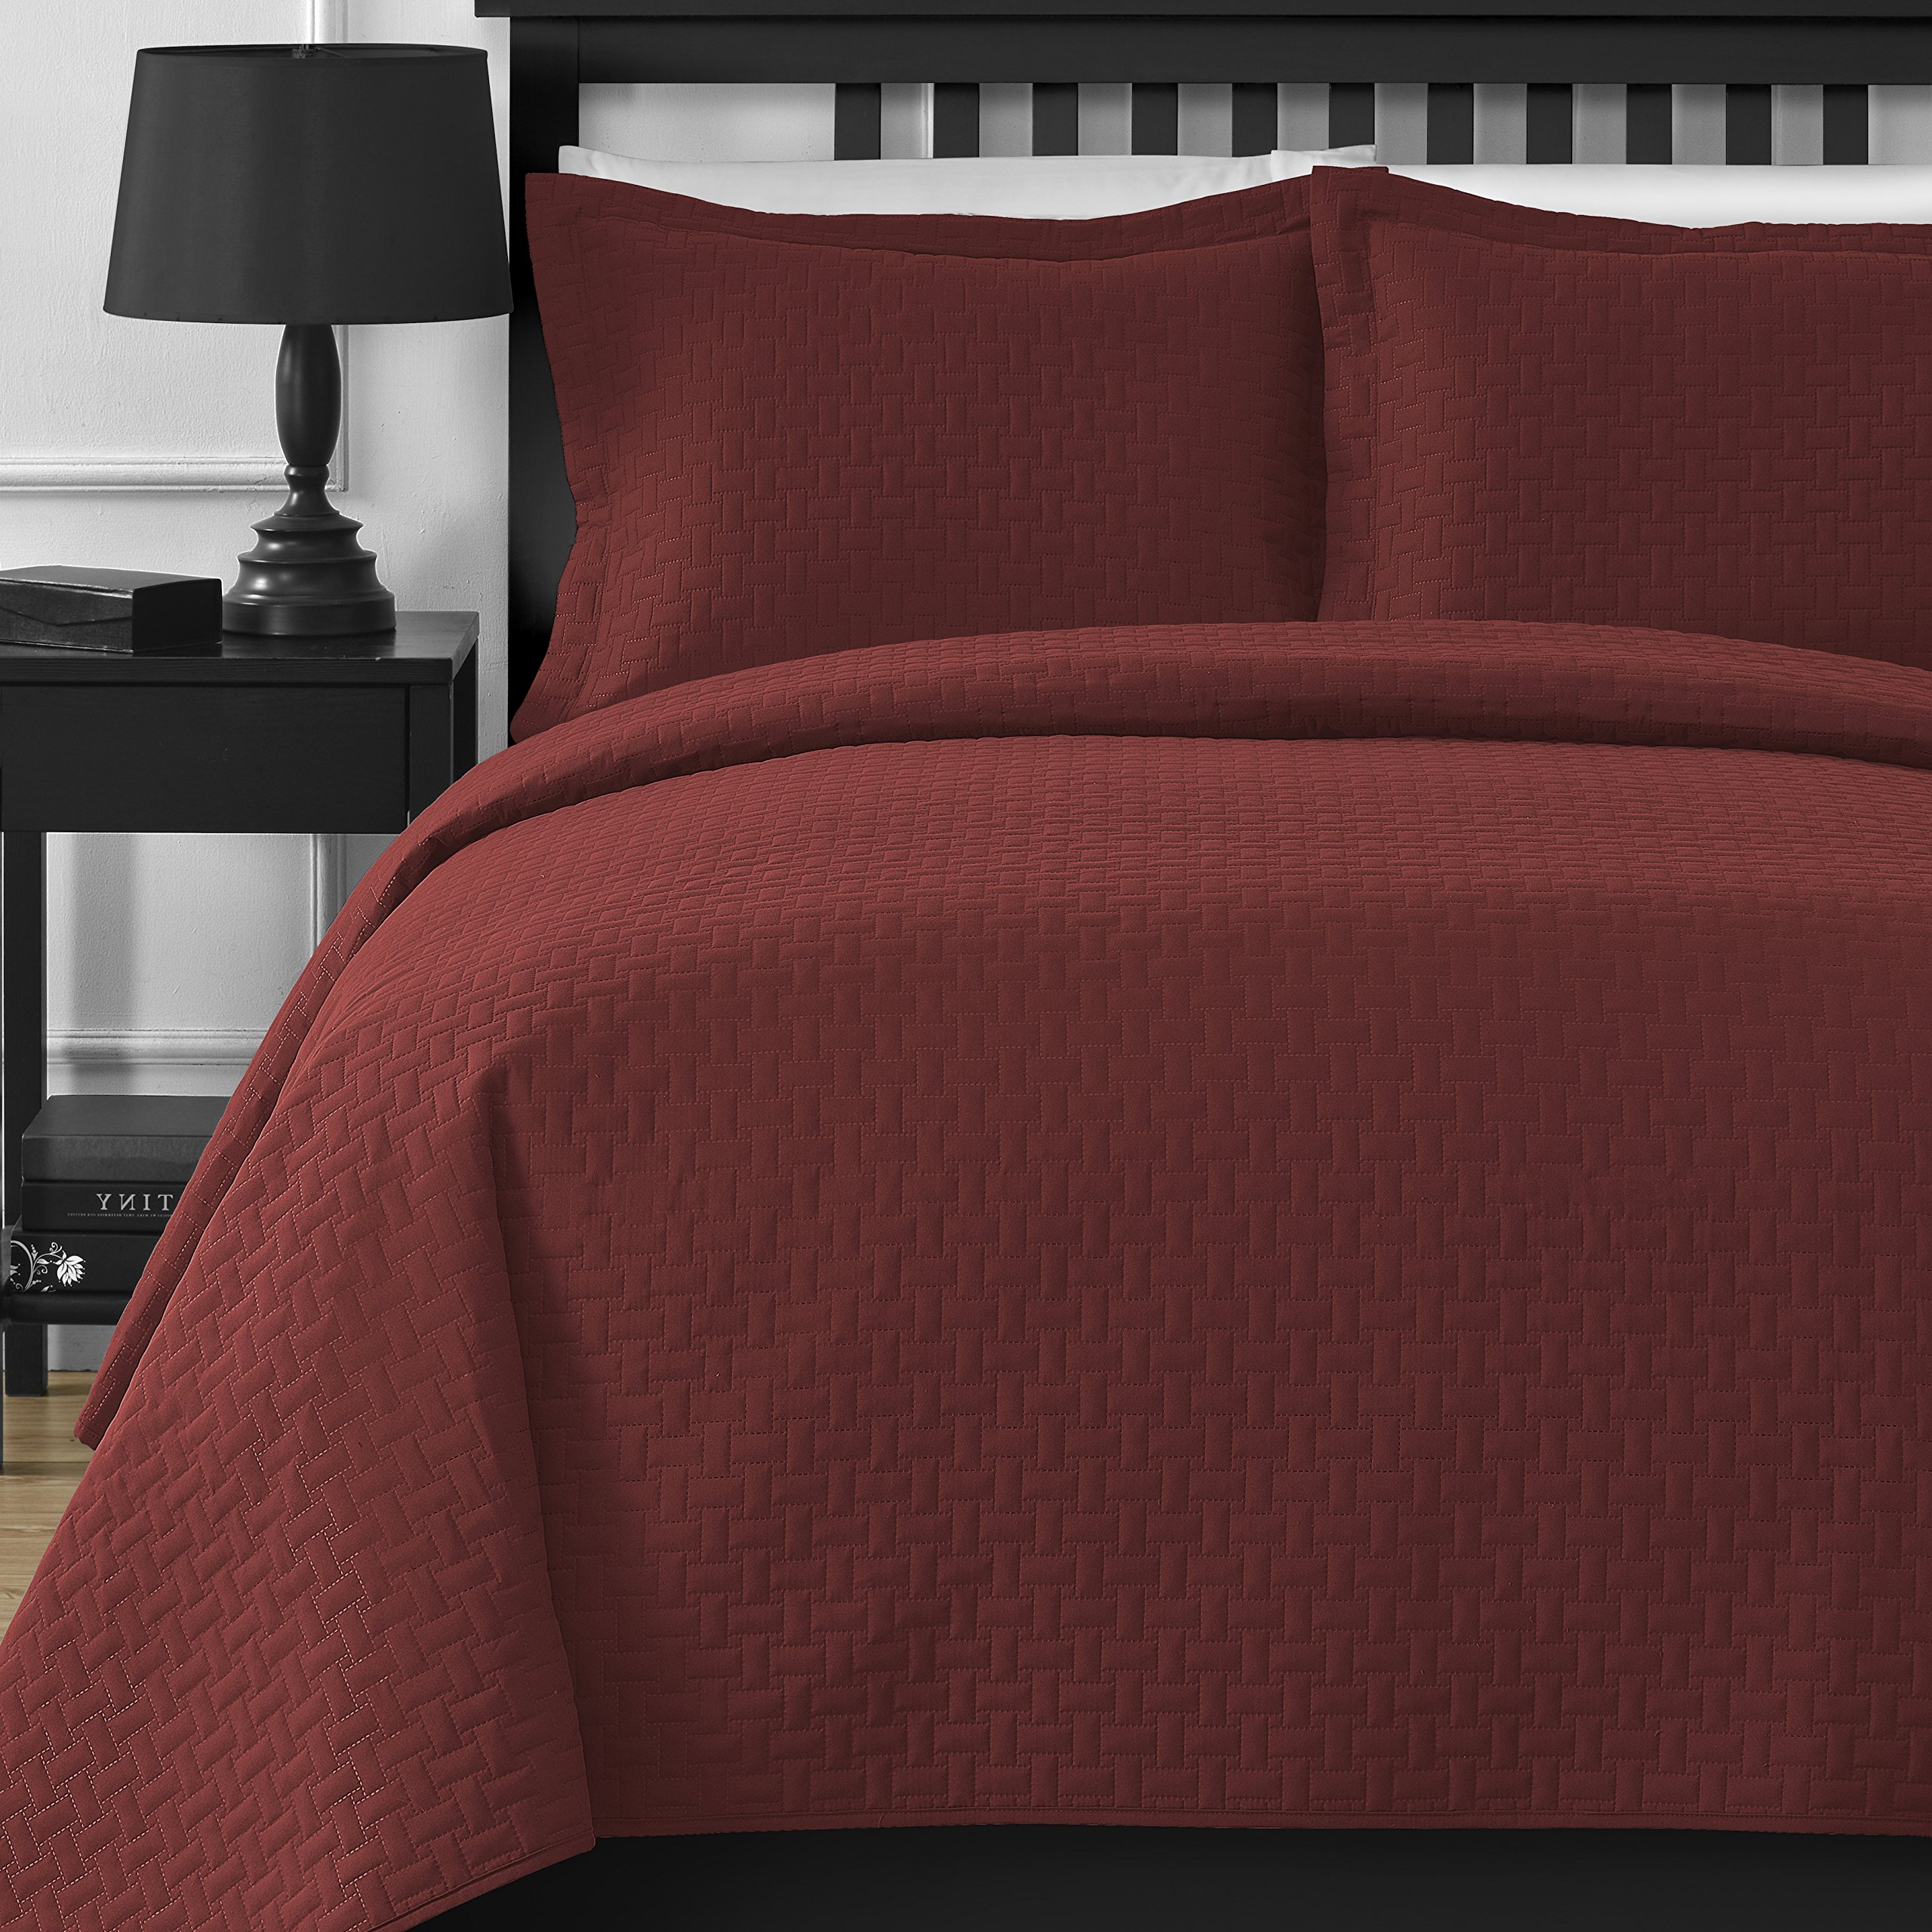 Extra Lightweight and Oversized Comfy Bedding Frame Embossing 3-piece Bedspread Coverlet Set (King/California King, Brick)